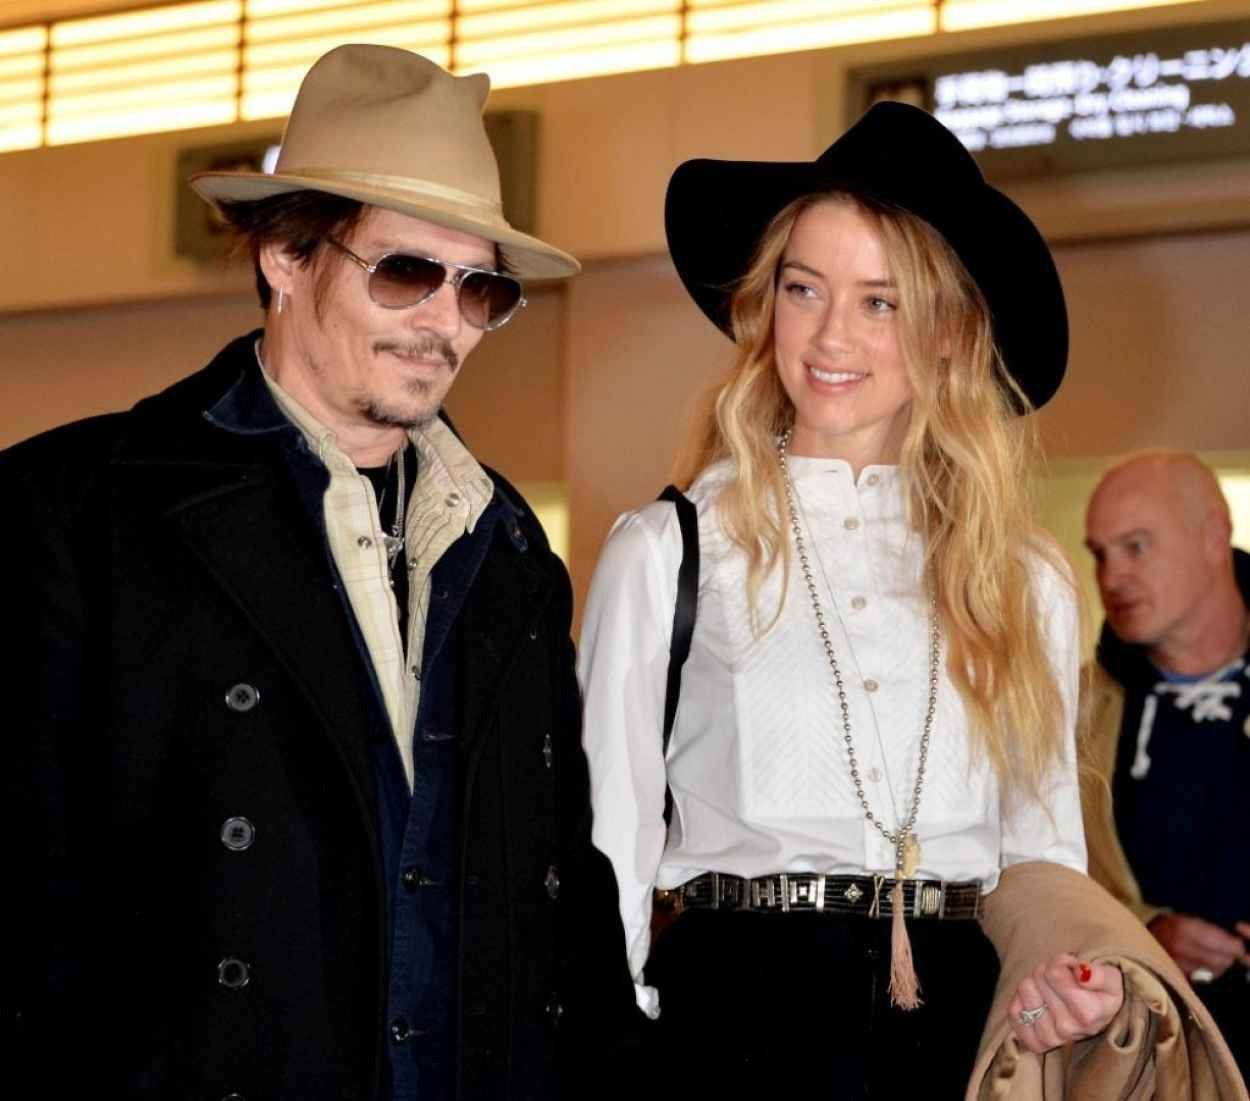 Amber Heard and Johnny Depp at Tokyo International Airport, January 2015-1